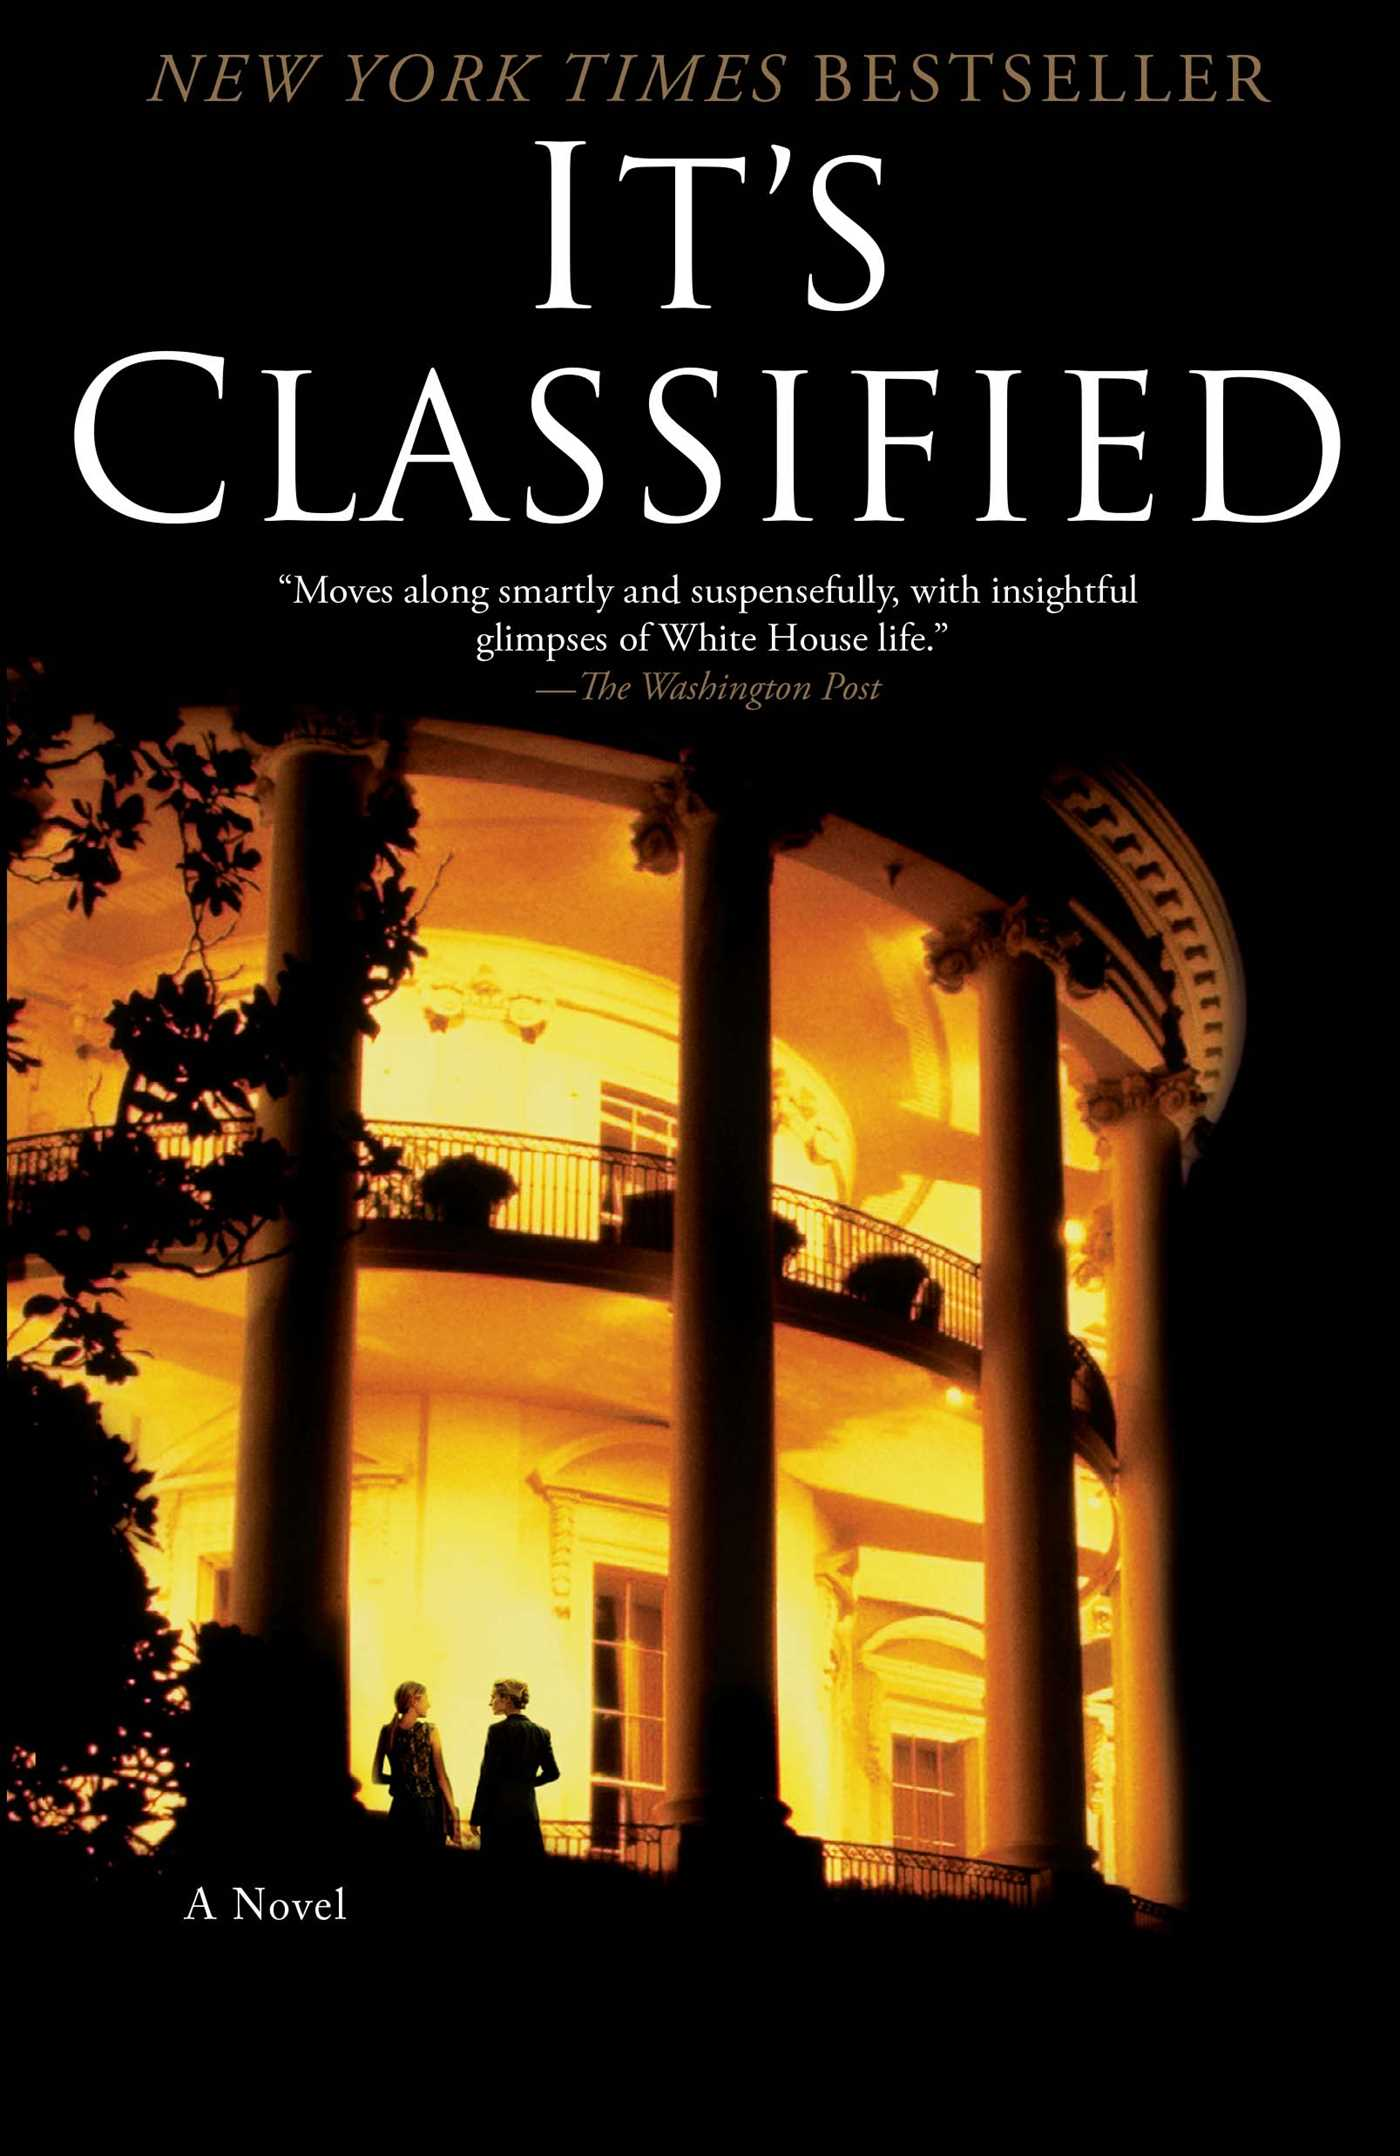 Its-classified-9781451610987_hr